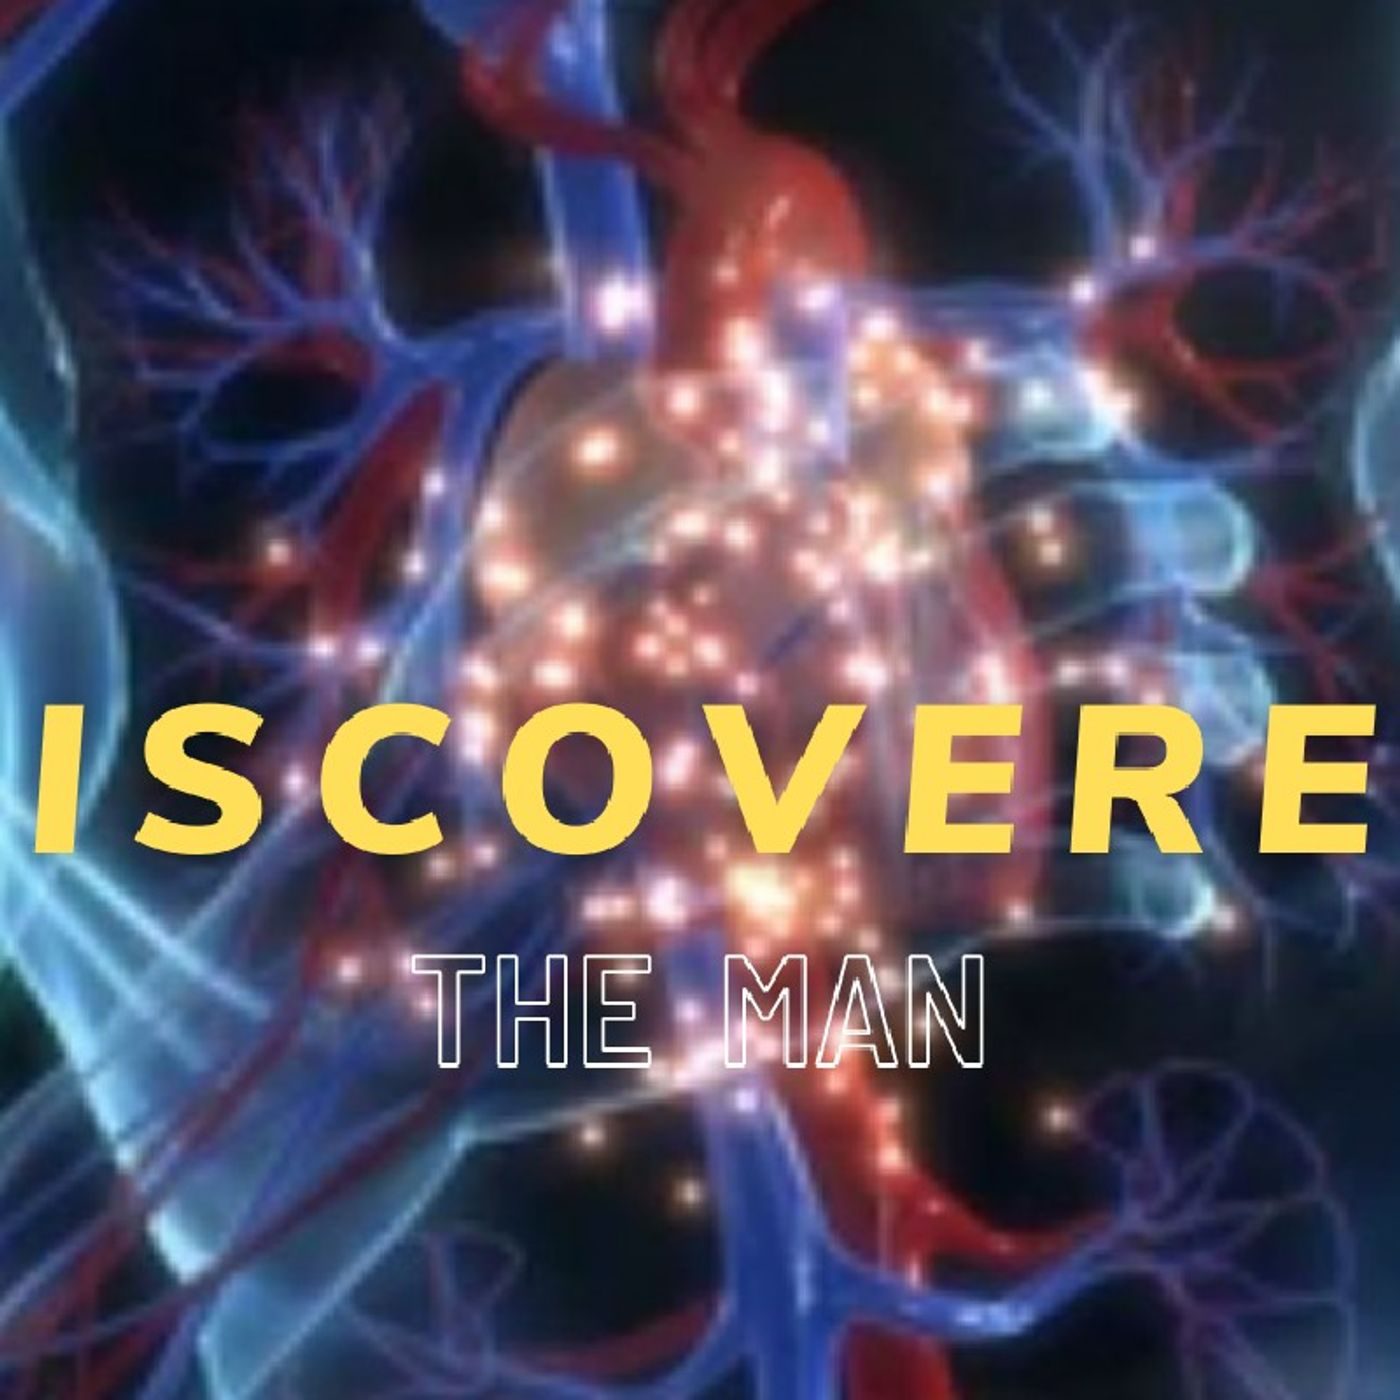 SELF-DISCOVERY   GREATEST AFFIRMATIONS    CONSCIOUSNESS MEDITATION